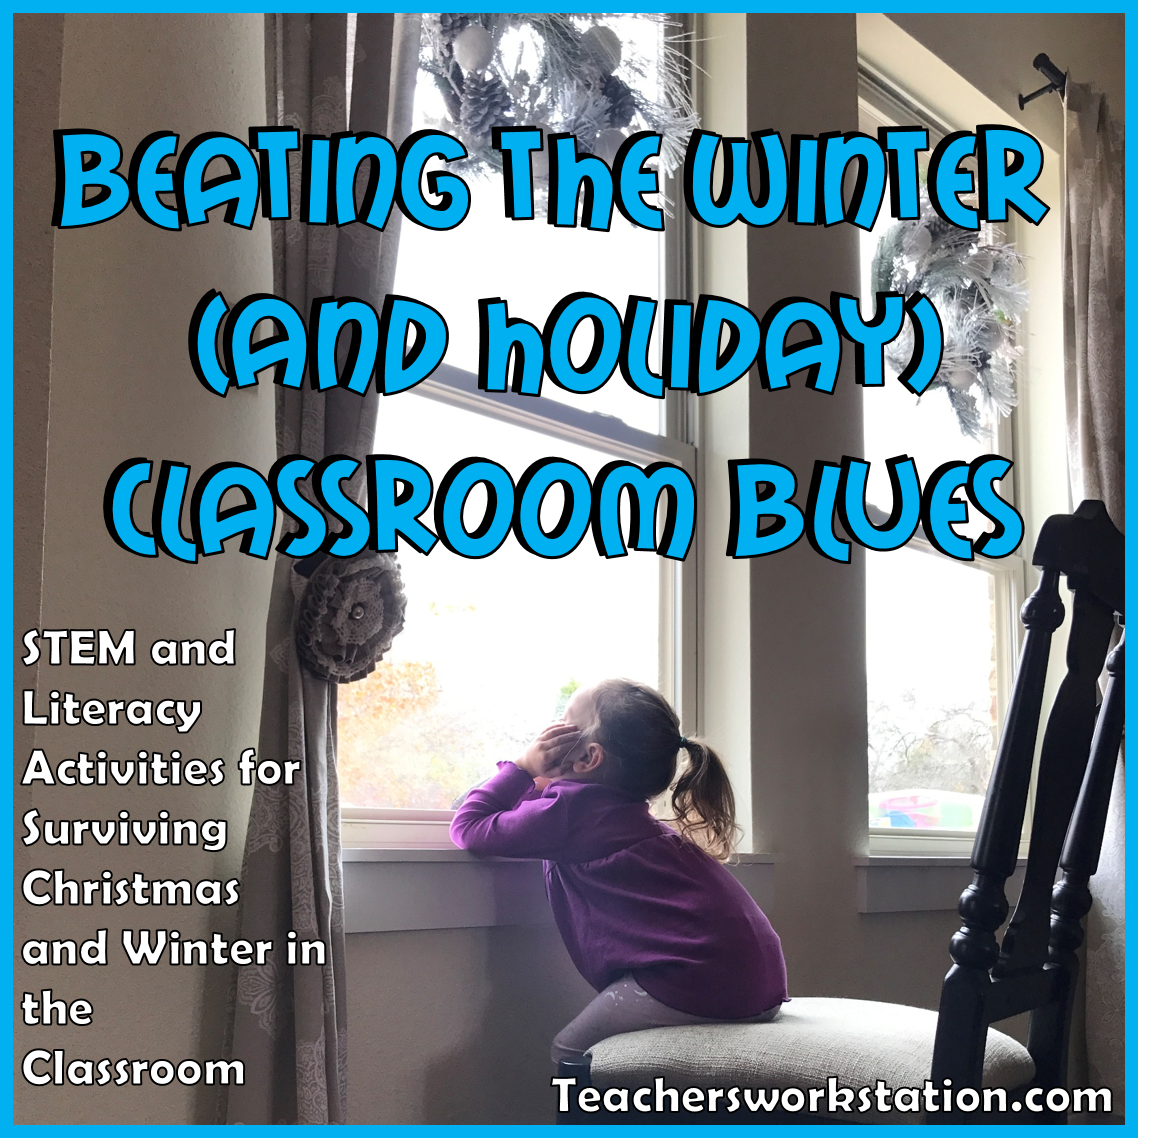 STEM and Literacy Activities for Surviving Christmas and Winter in ...